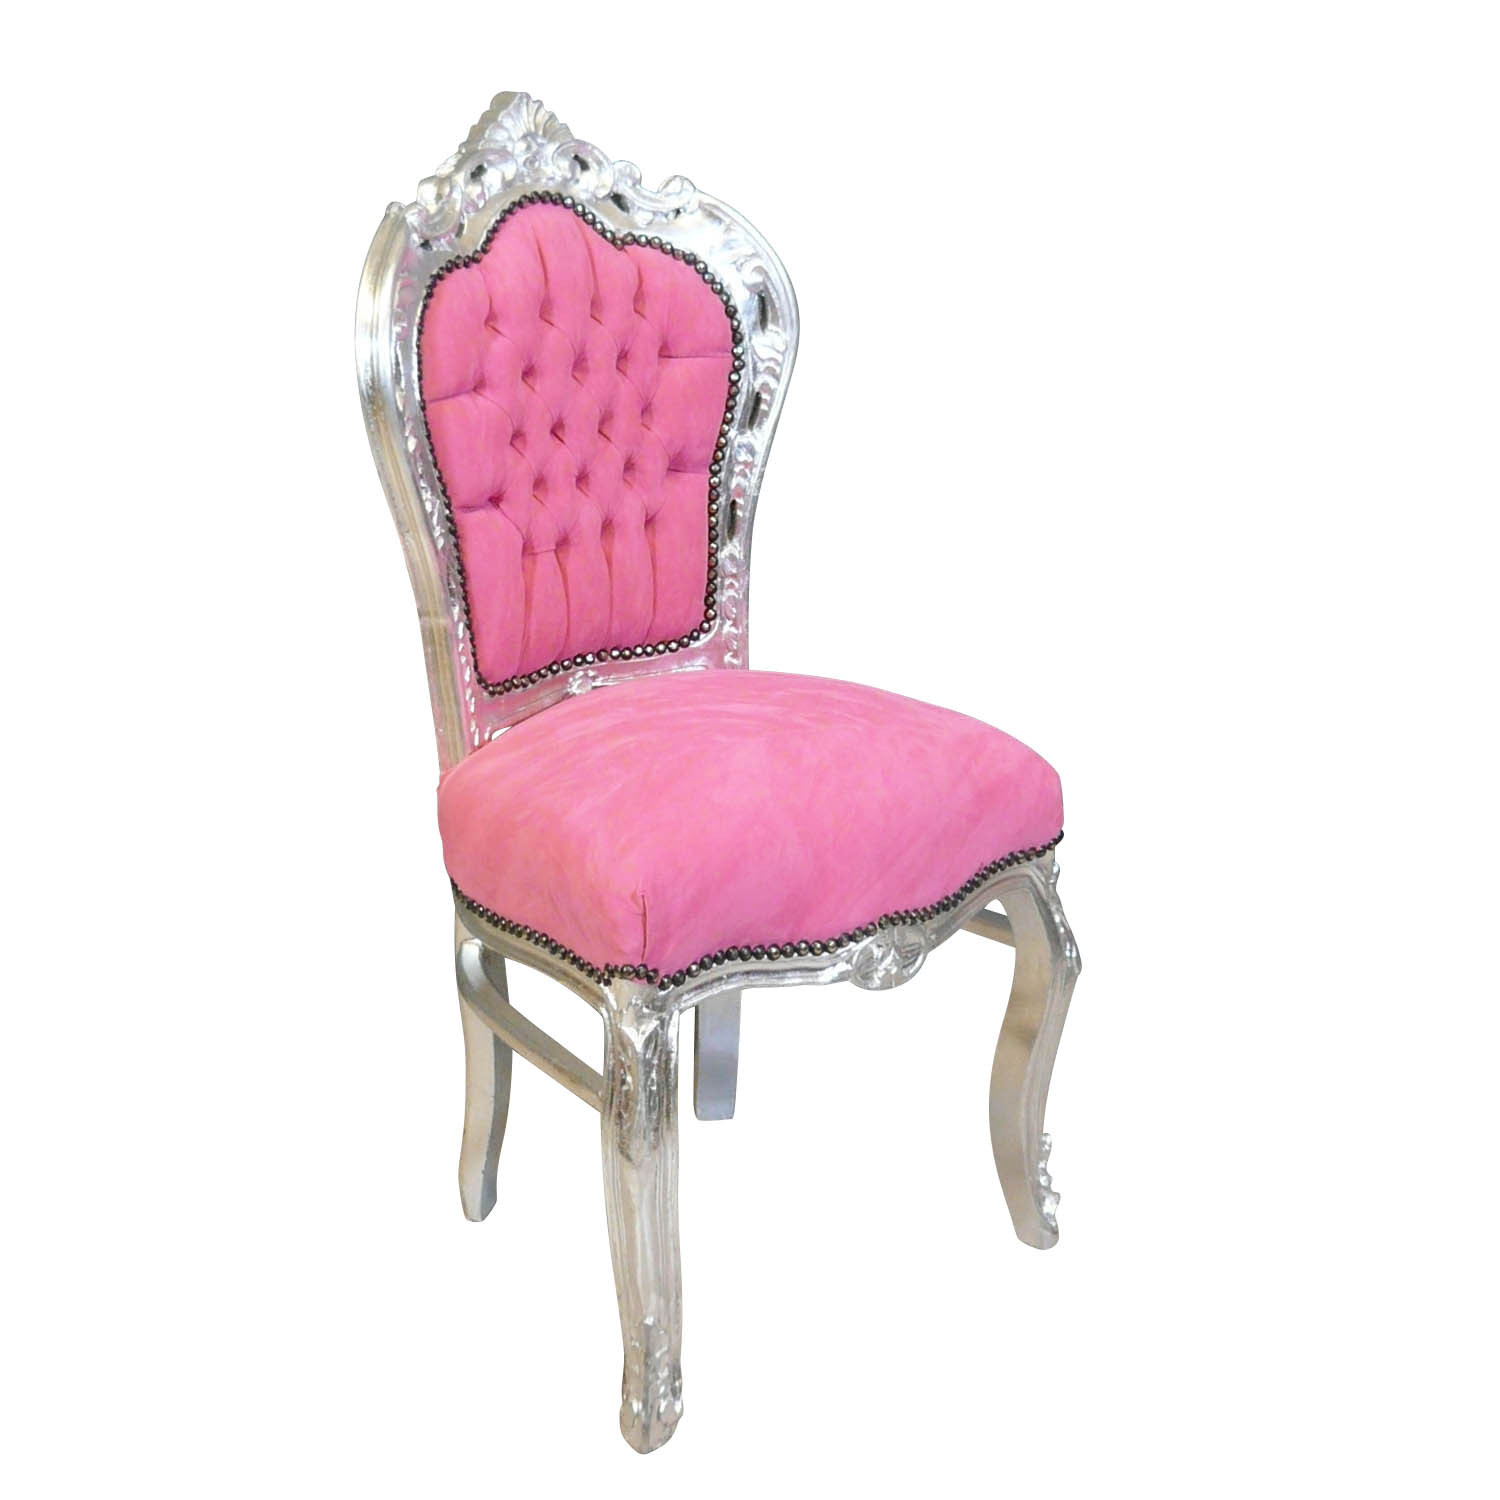 Chaise baroque galerie photos royal d corations - Chaise baroque rose ...